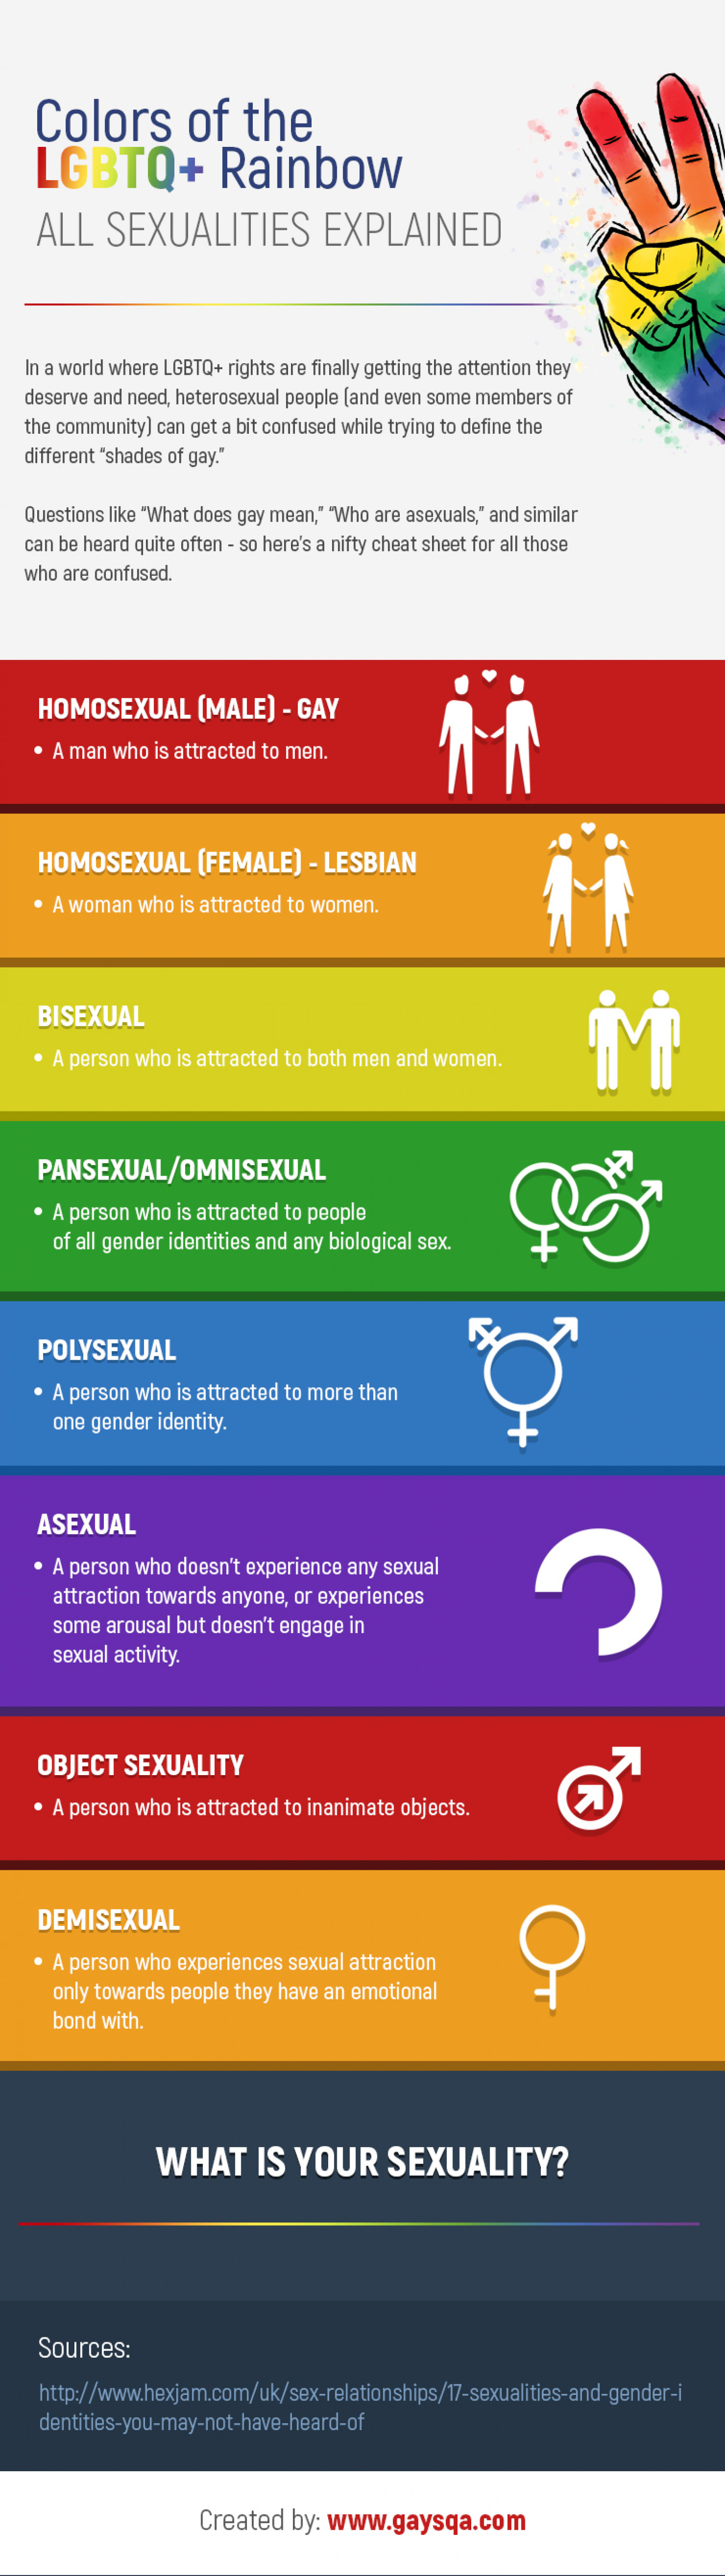 Colors of the LGBTQ+ Rainbow All Sexualities Explained Infographic